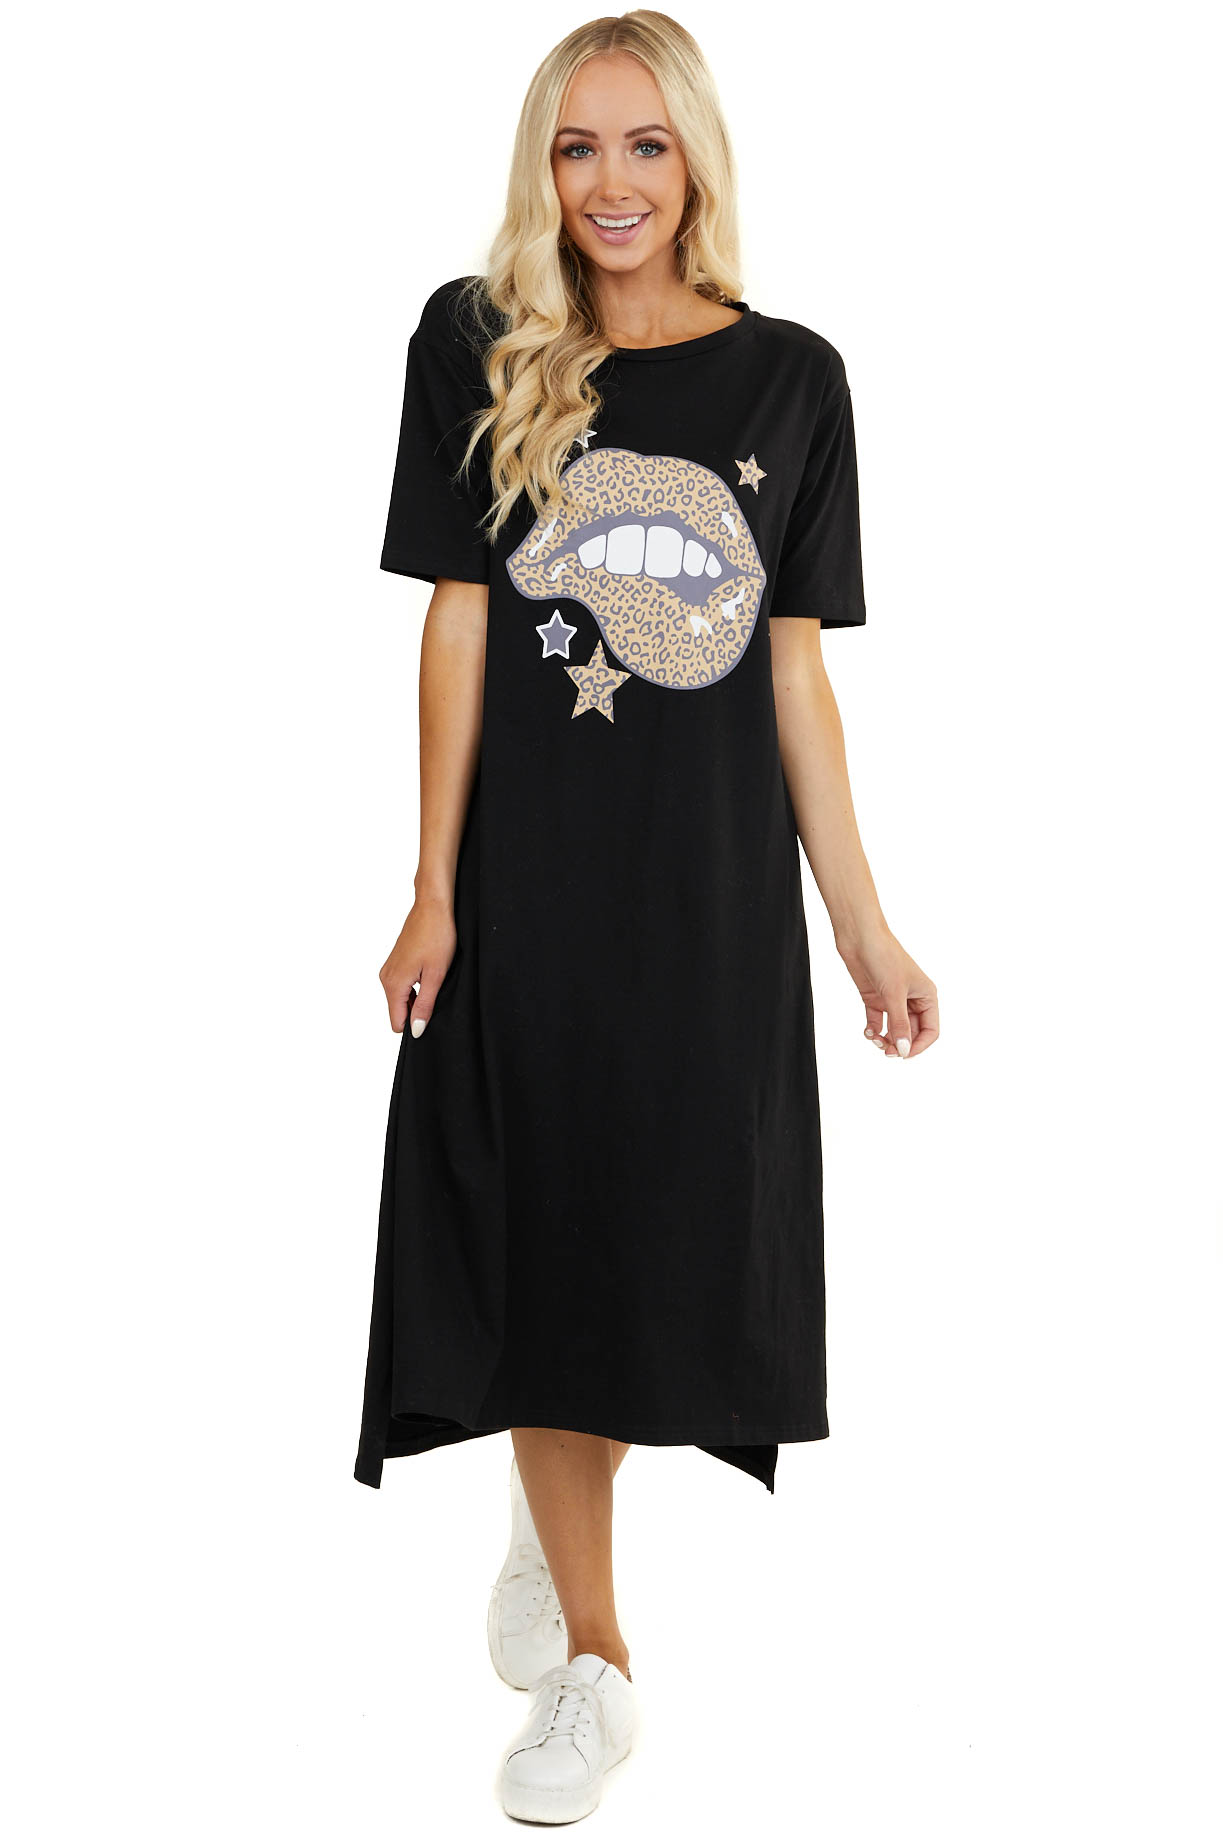 Black Soft Knit Midi Dress with Leopard Print Lip Graphic